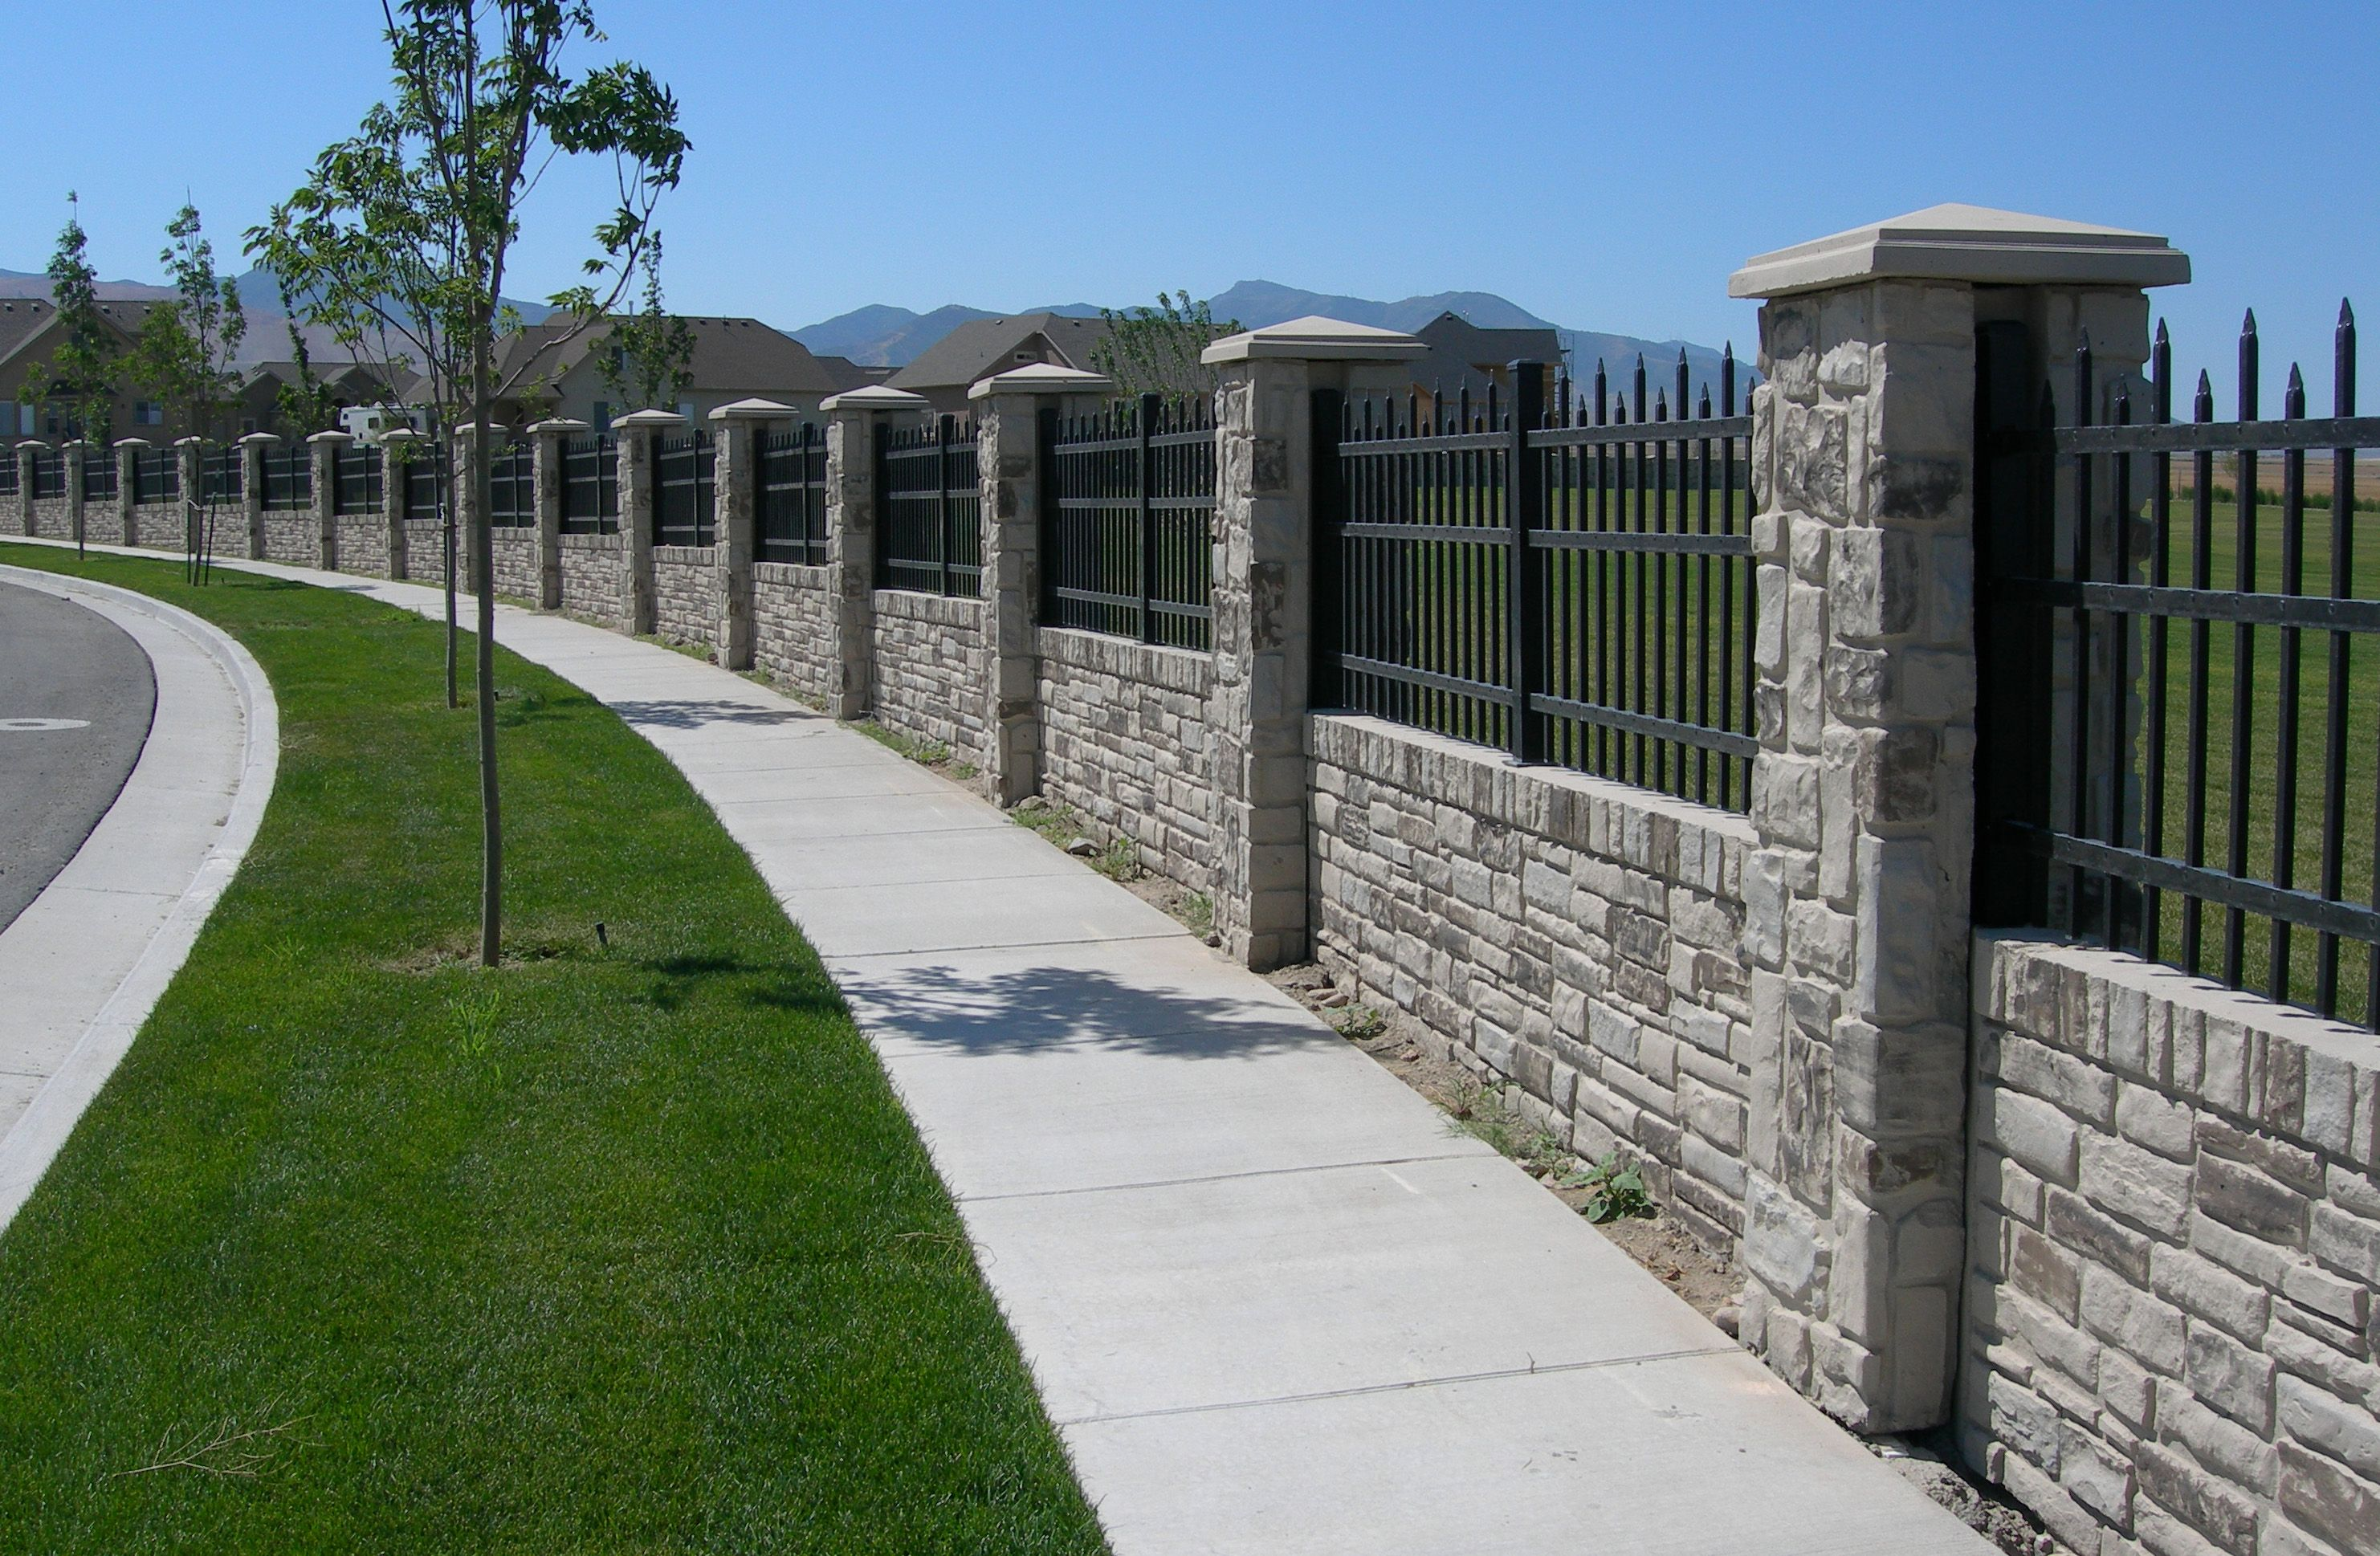 Concrete Fence Walls : Privacy fencing concrete walls with realistic stone